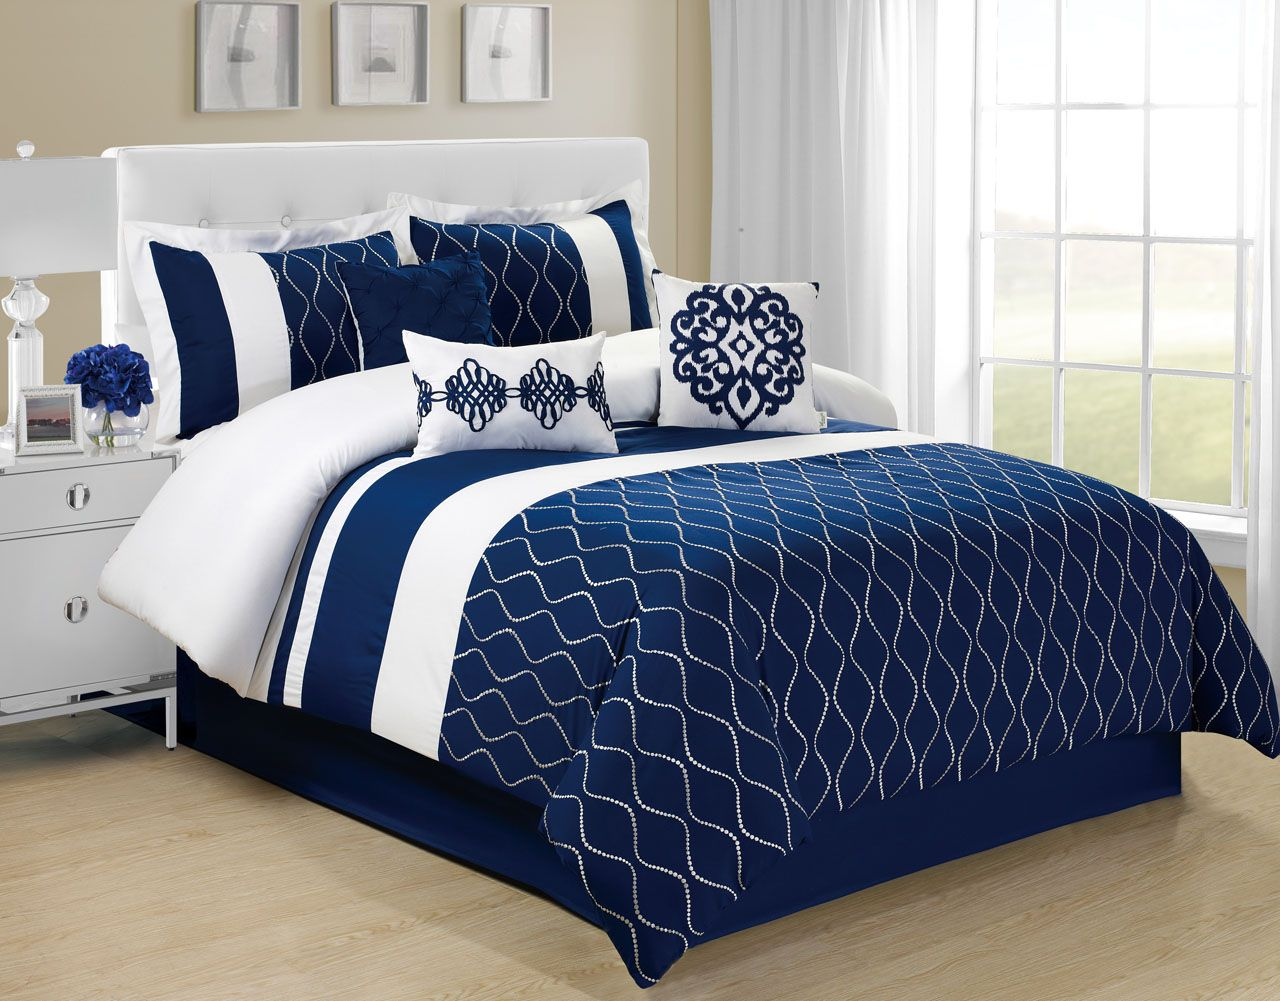 7 Piece Malibu Navy White Comforter Set Comforter Sets Blue Comforter Sets Blue Bedding